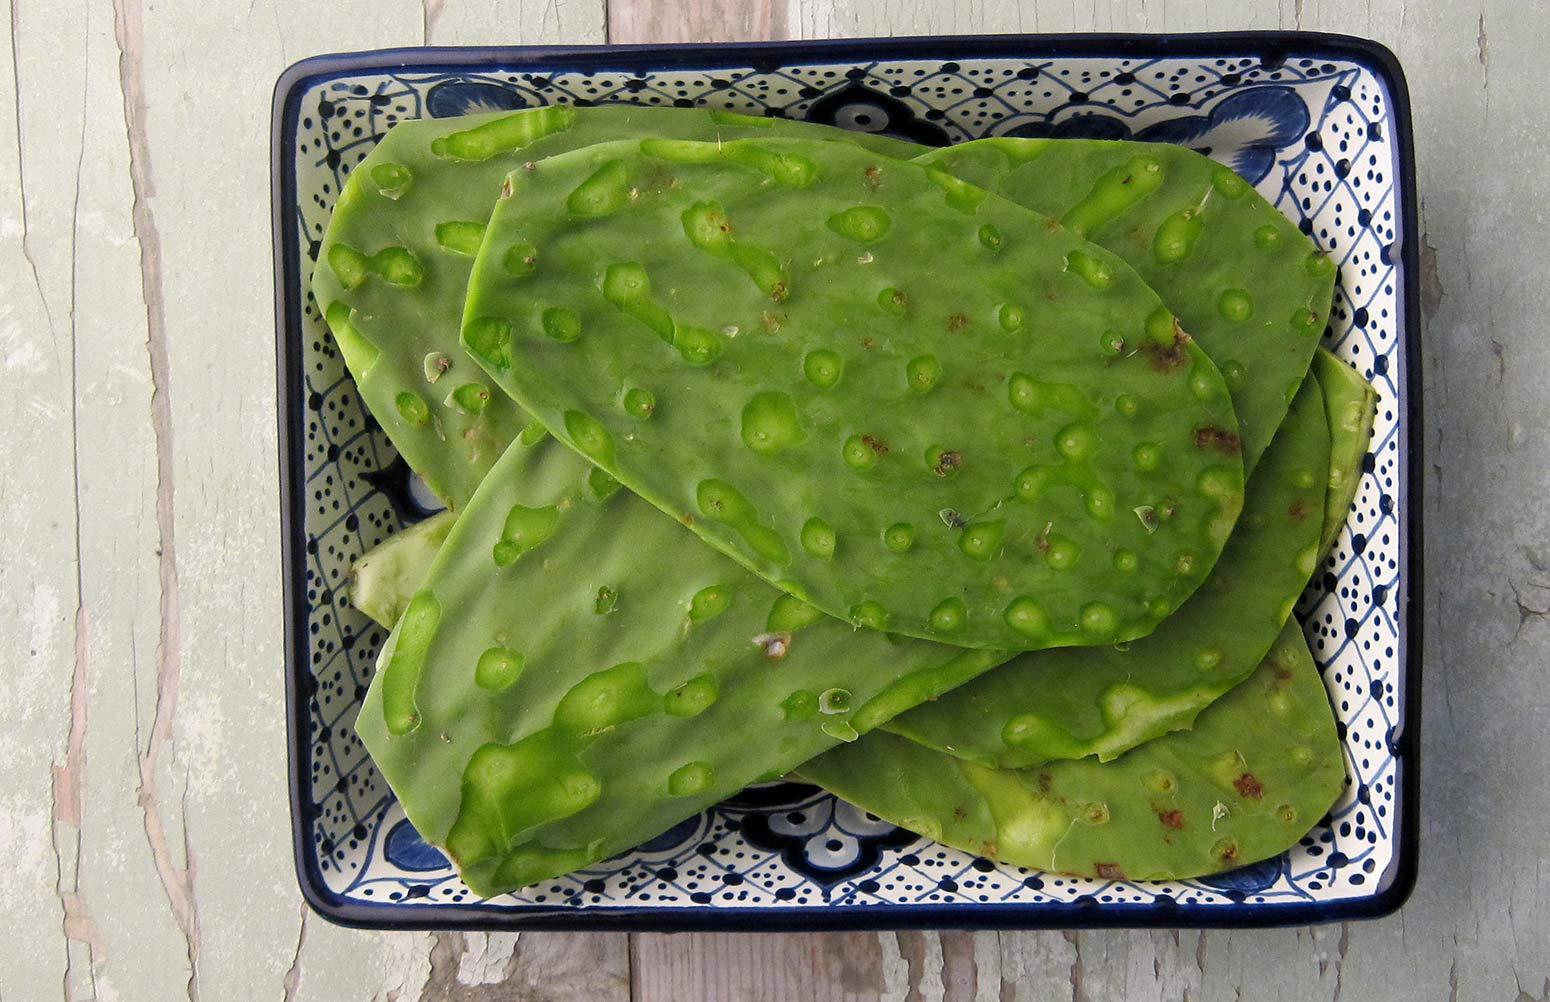 How to cook nopales, showing de-spined cactus paddles